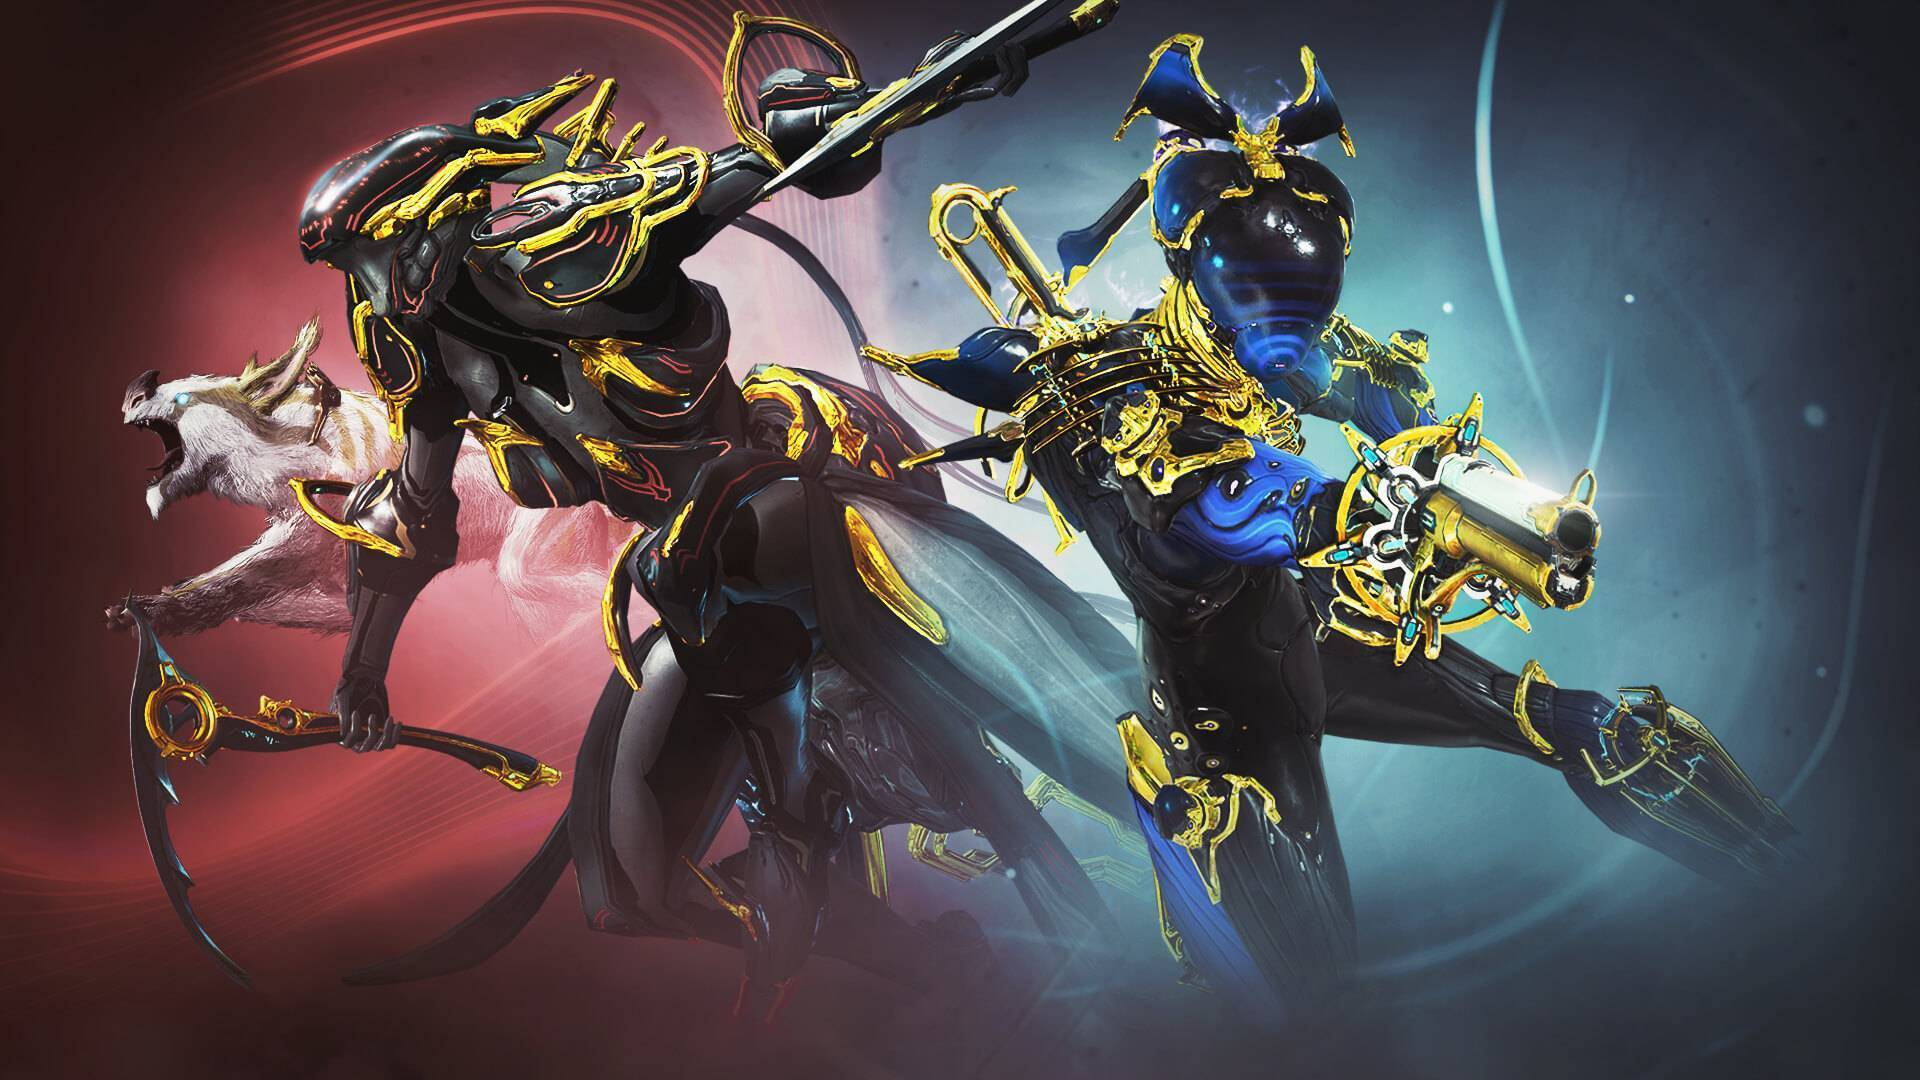 The Vault Opens For Trinity And Nova In Warframe Tomorrow An easy nova guide covering all her abilities as well as some of the best builds to use and tips on how to use her effectively. the vault opens for trinity and nova in